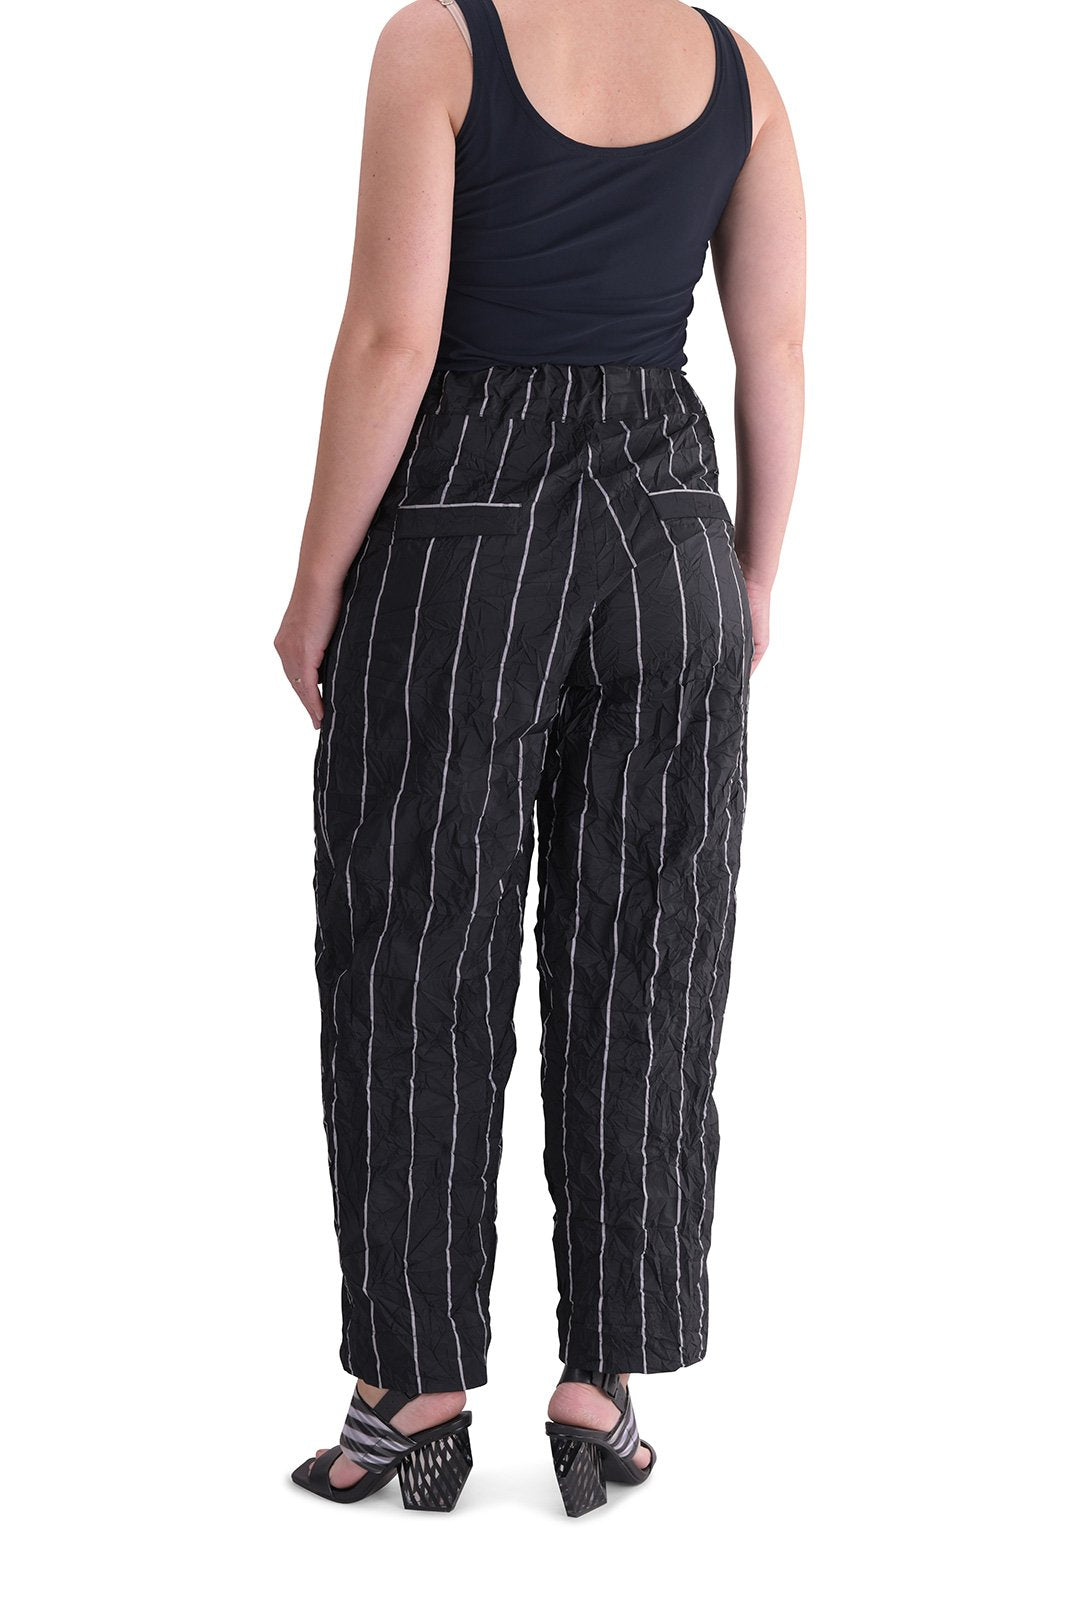 Back bottom half view of a woman wearing the alembika pinstriped pant. The pant is black with white pinstripes. The back has two welt pockets.  The waist is elastic and the pant sits right at the ankles. This pant has a straight leg silhouette.